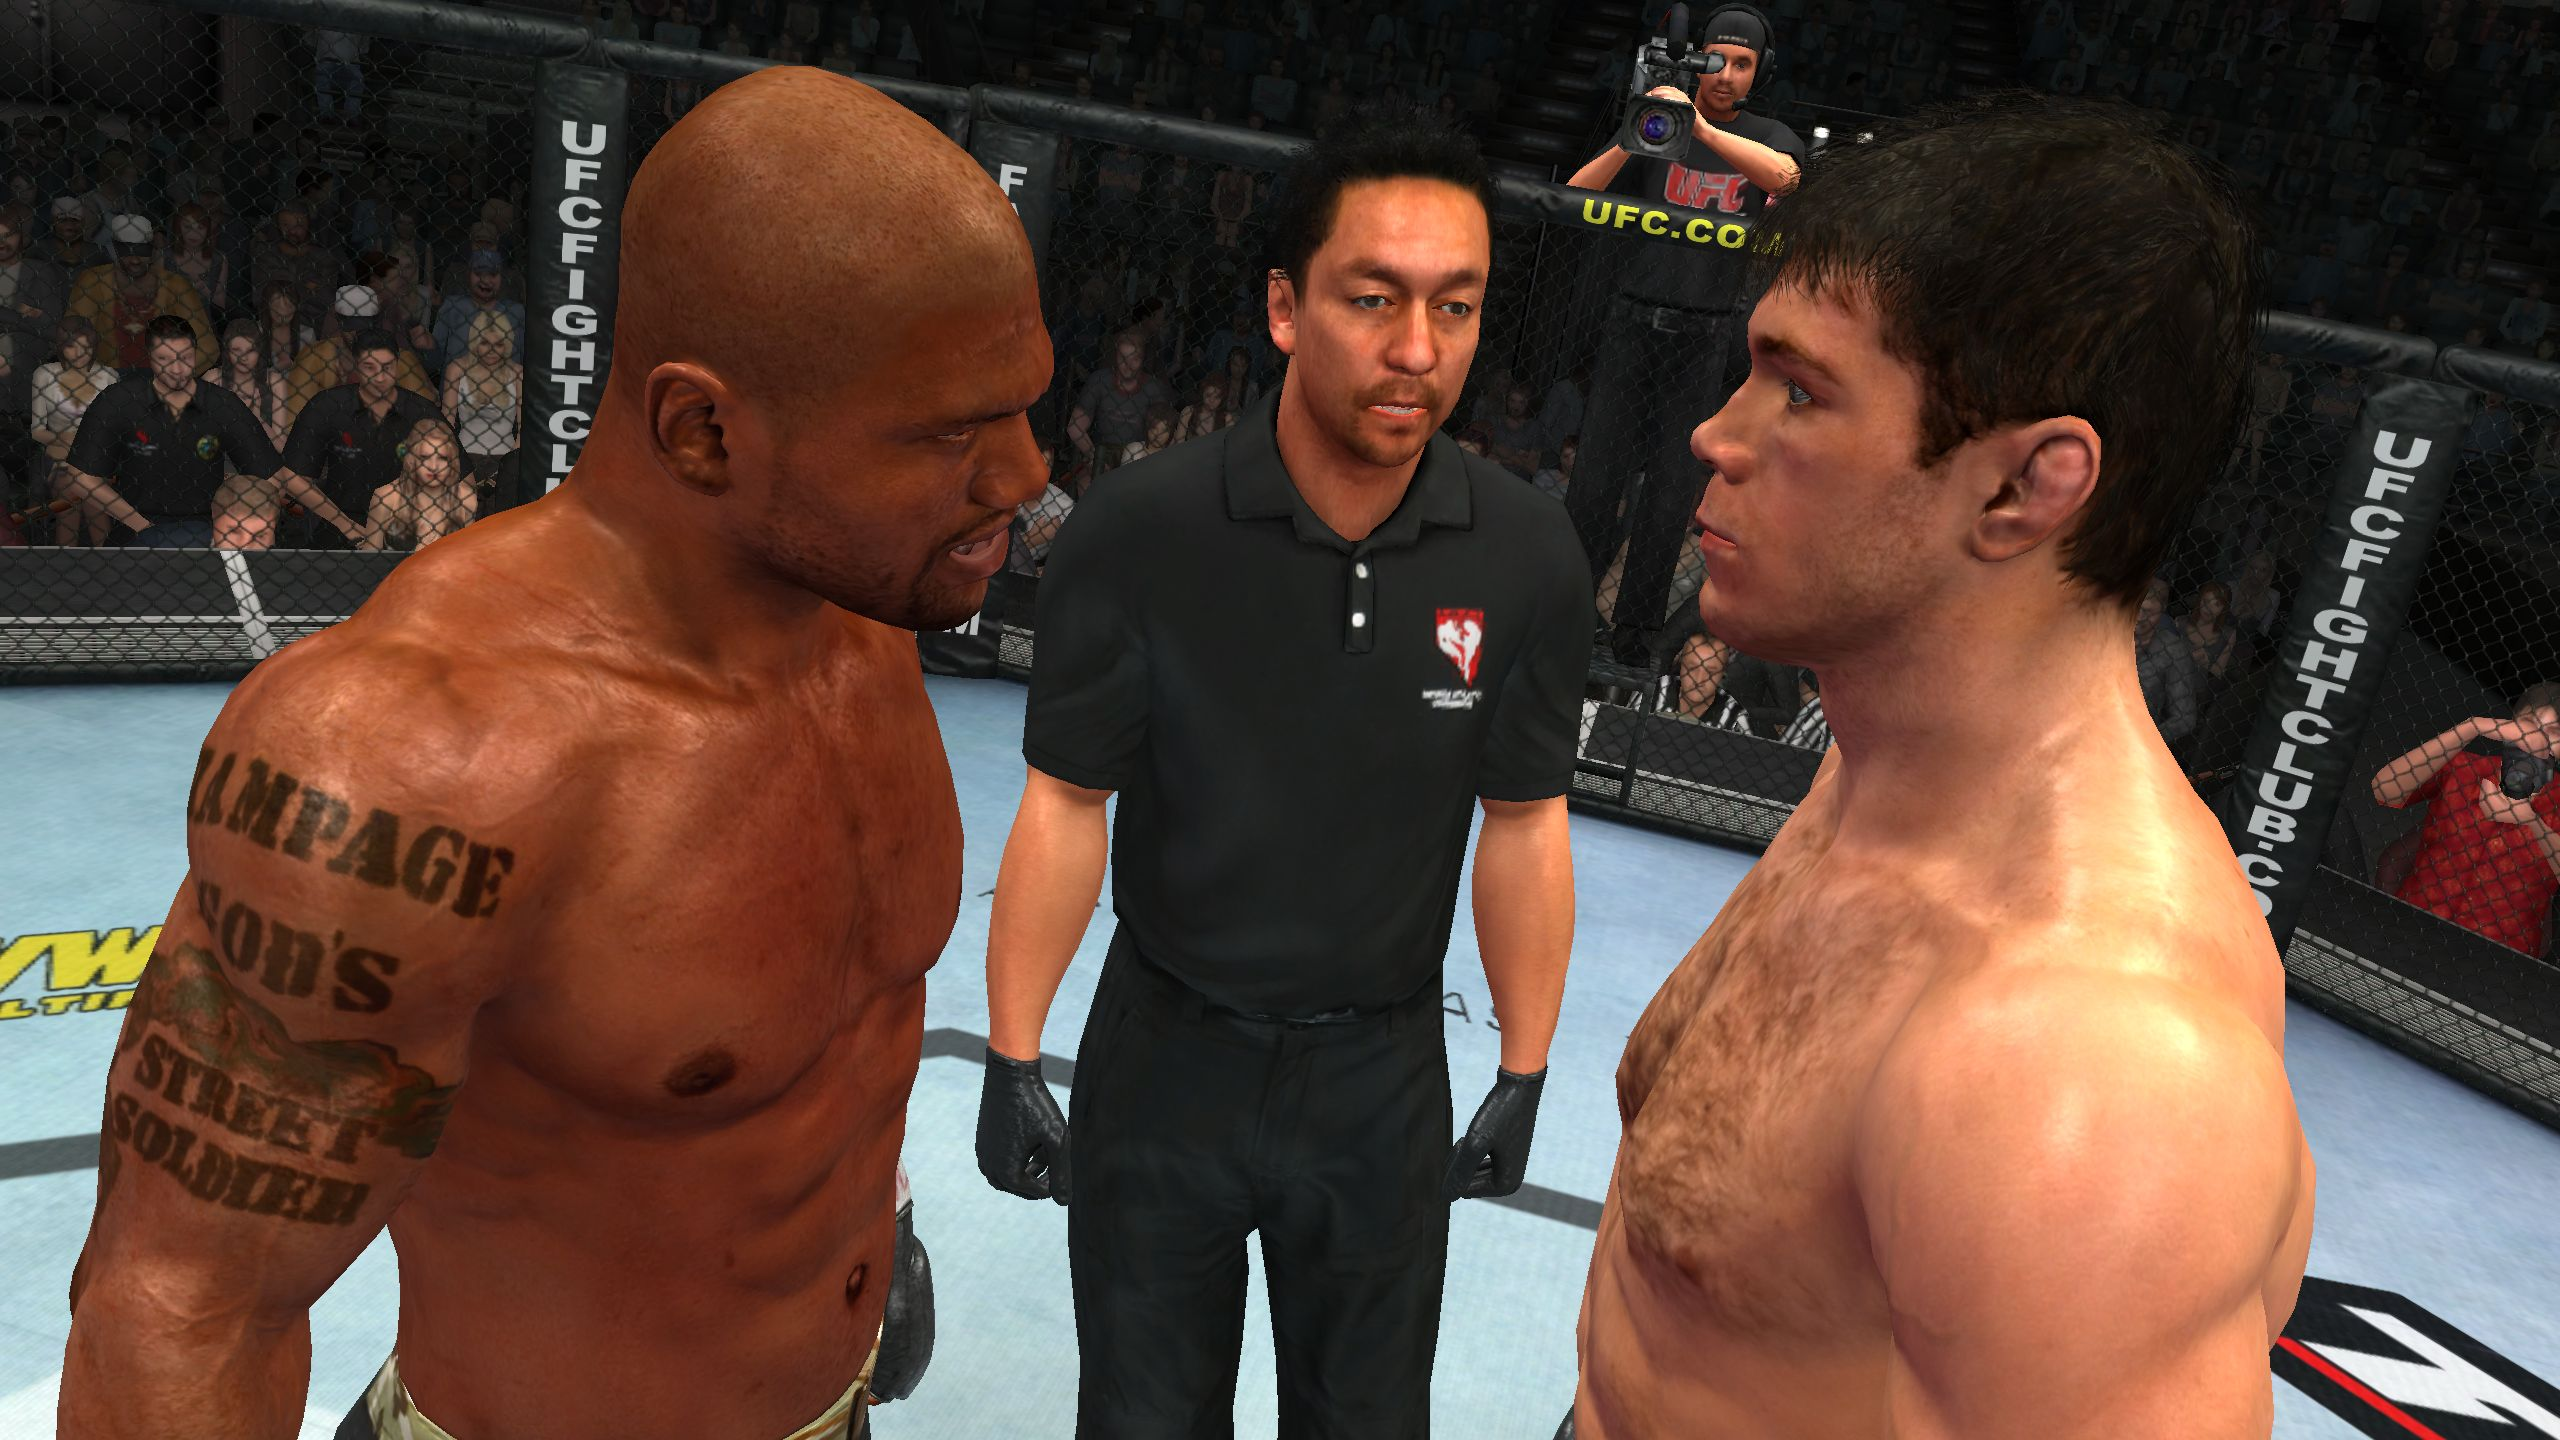 UFC 2009 Screens - The Next Level.